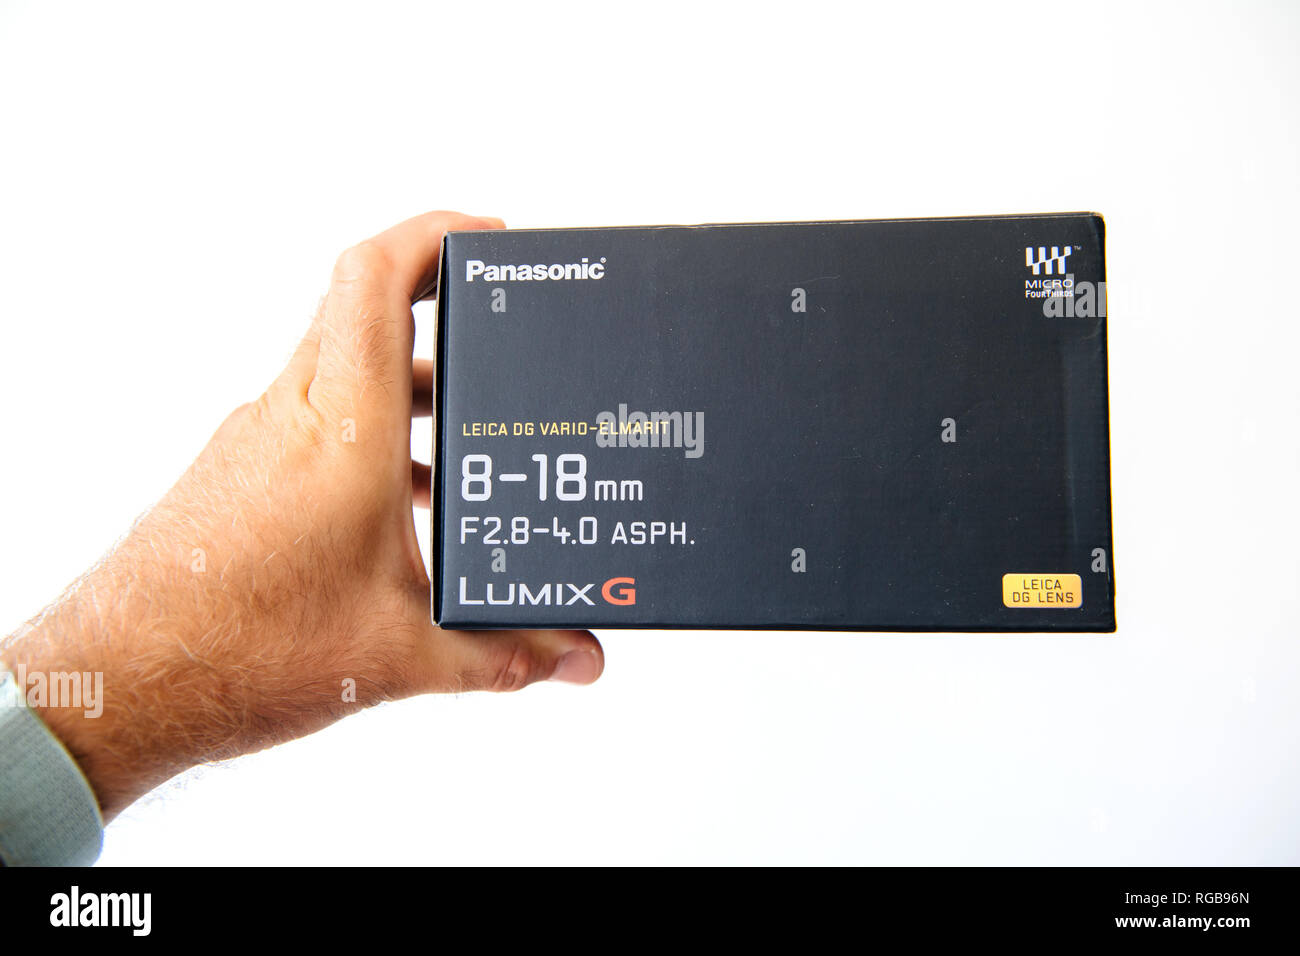 PARIS, FRANCE - JUN 30, 2018: Cardboard with Leica Vario-Elmarit 8-18 Micro for Four Thirds System digital still and video camera mirorrless - Stock Image